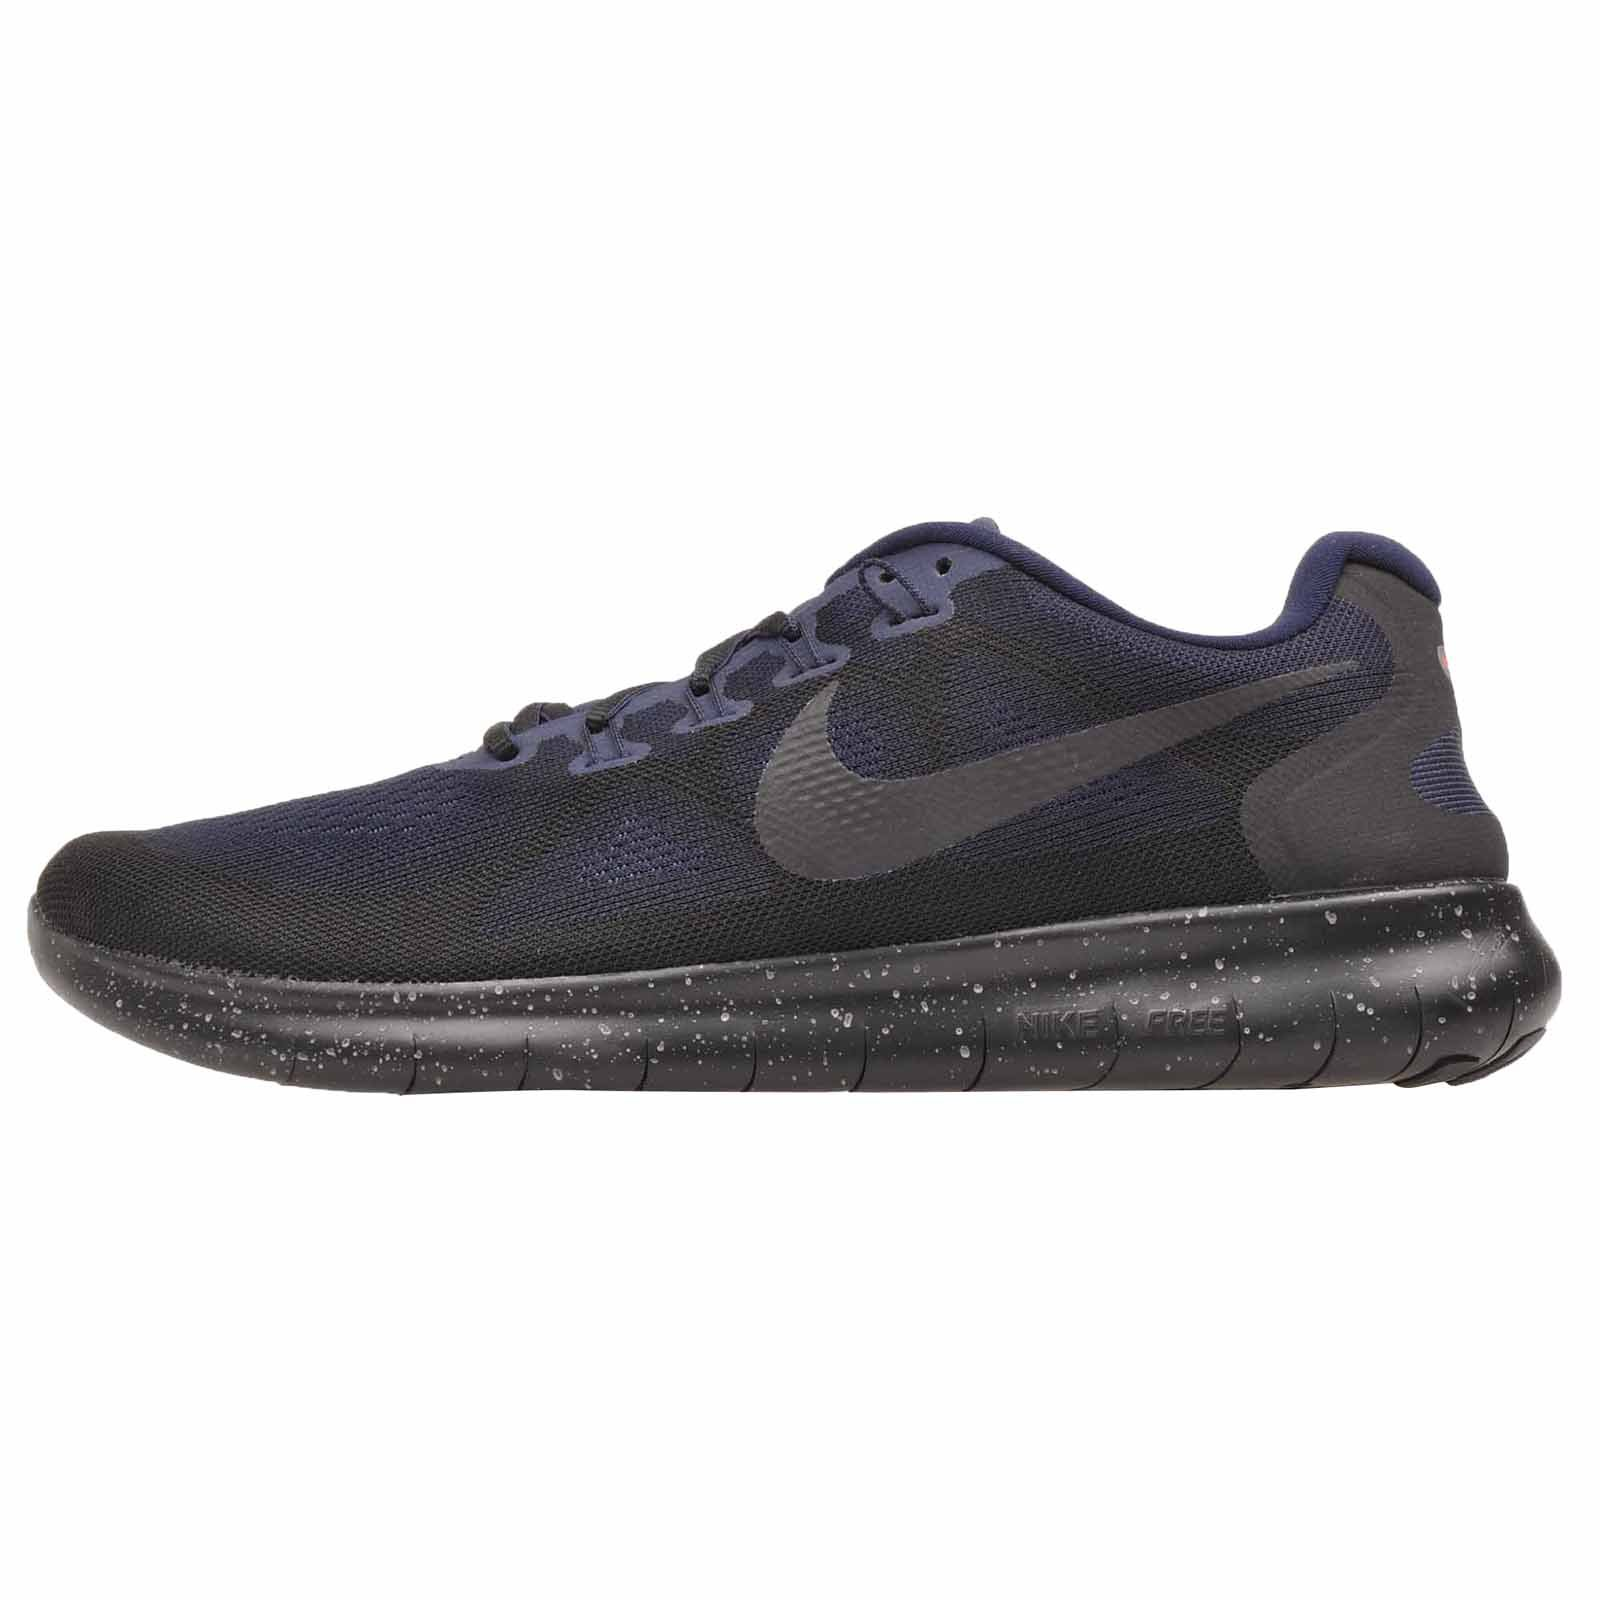 Nike Men's Free RN 2017 Shield, Black/Black-Black-Obsidian, 8 M US